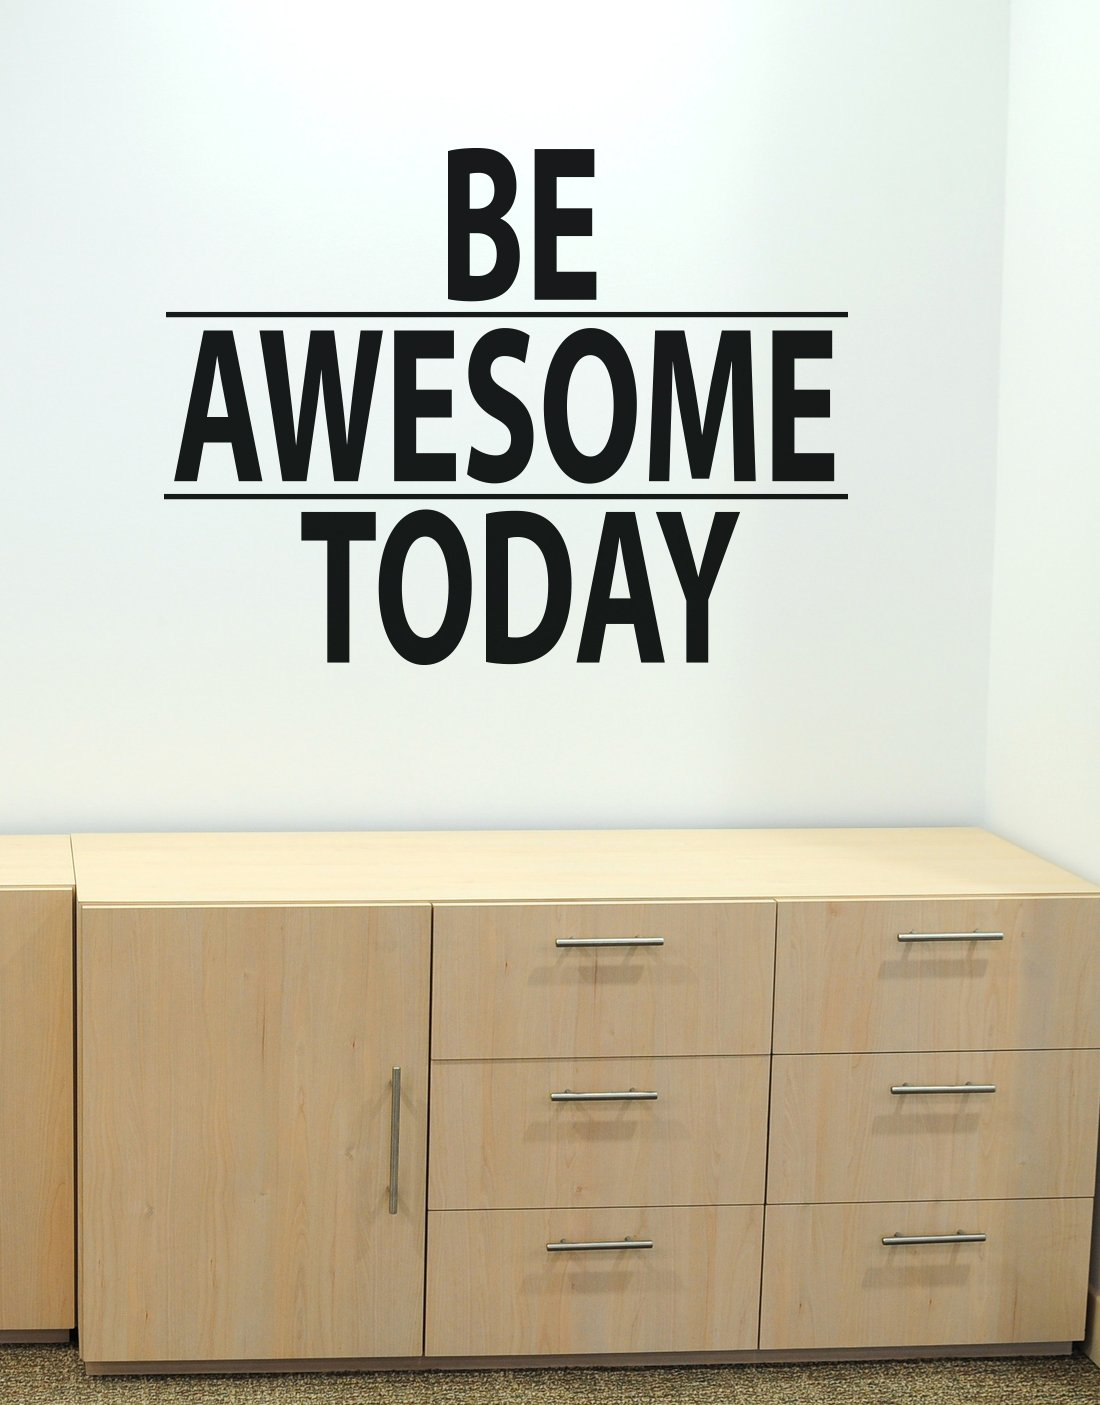 Stickerbrand Be Awesome Today Motivational Quote Vinyl Wall Decal Sticker by 30in X 40in - Easy to Apply/Removable. Made in the USA. #6013m Black color